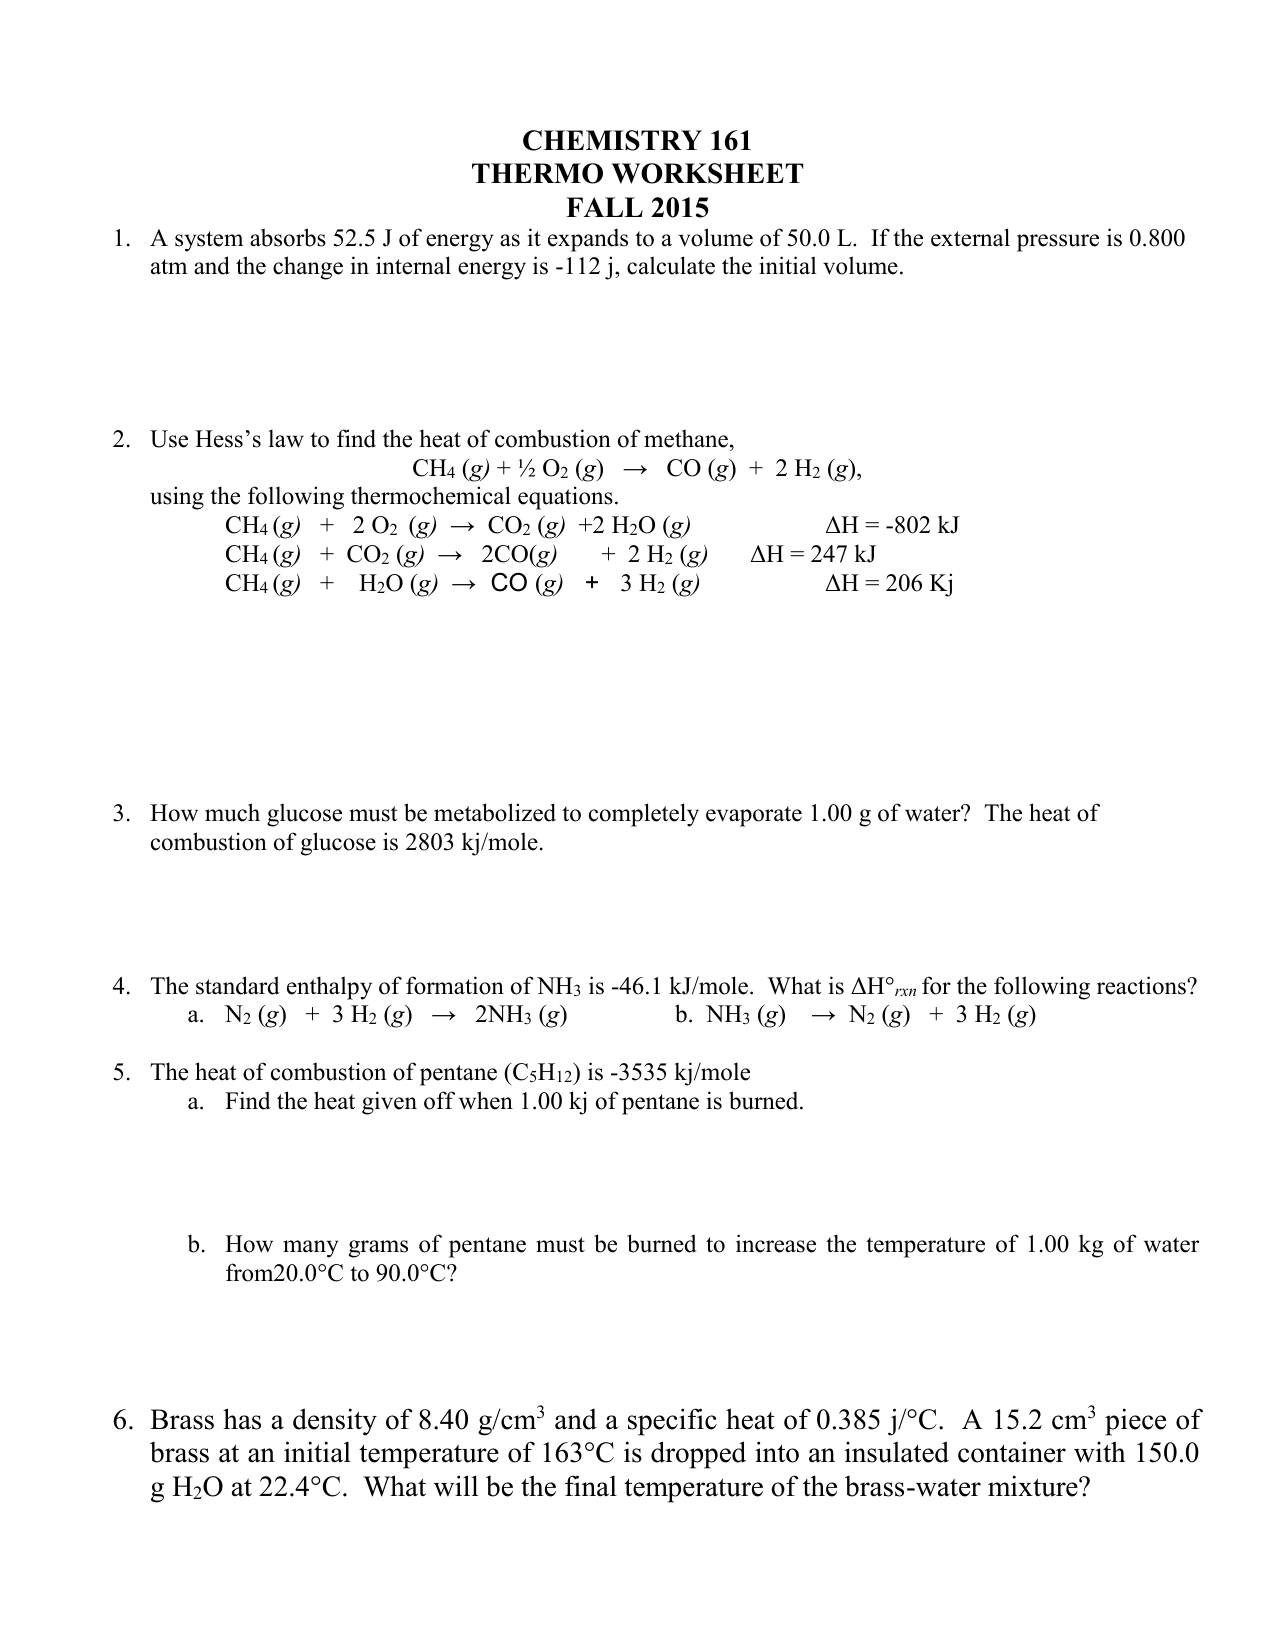 Thermochemistry Worksheet 1